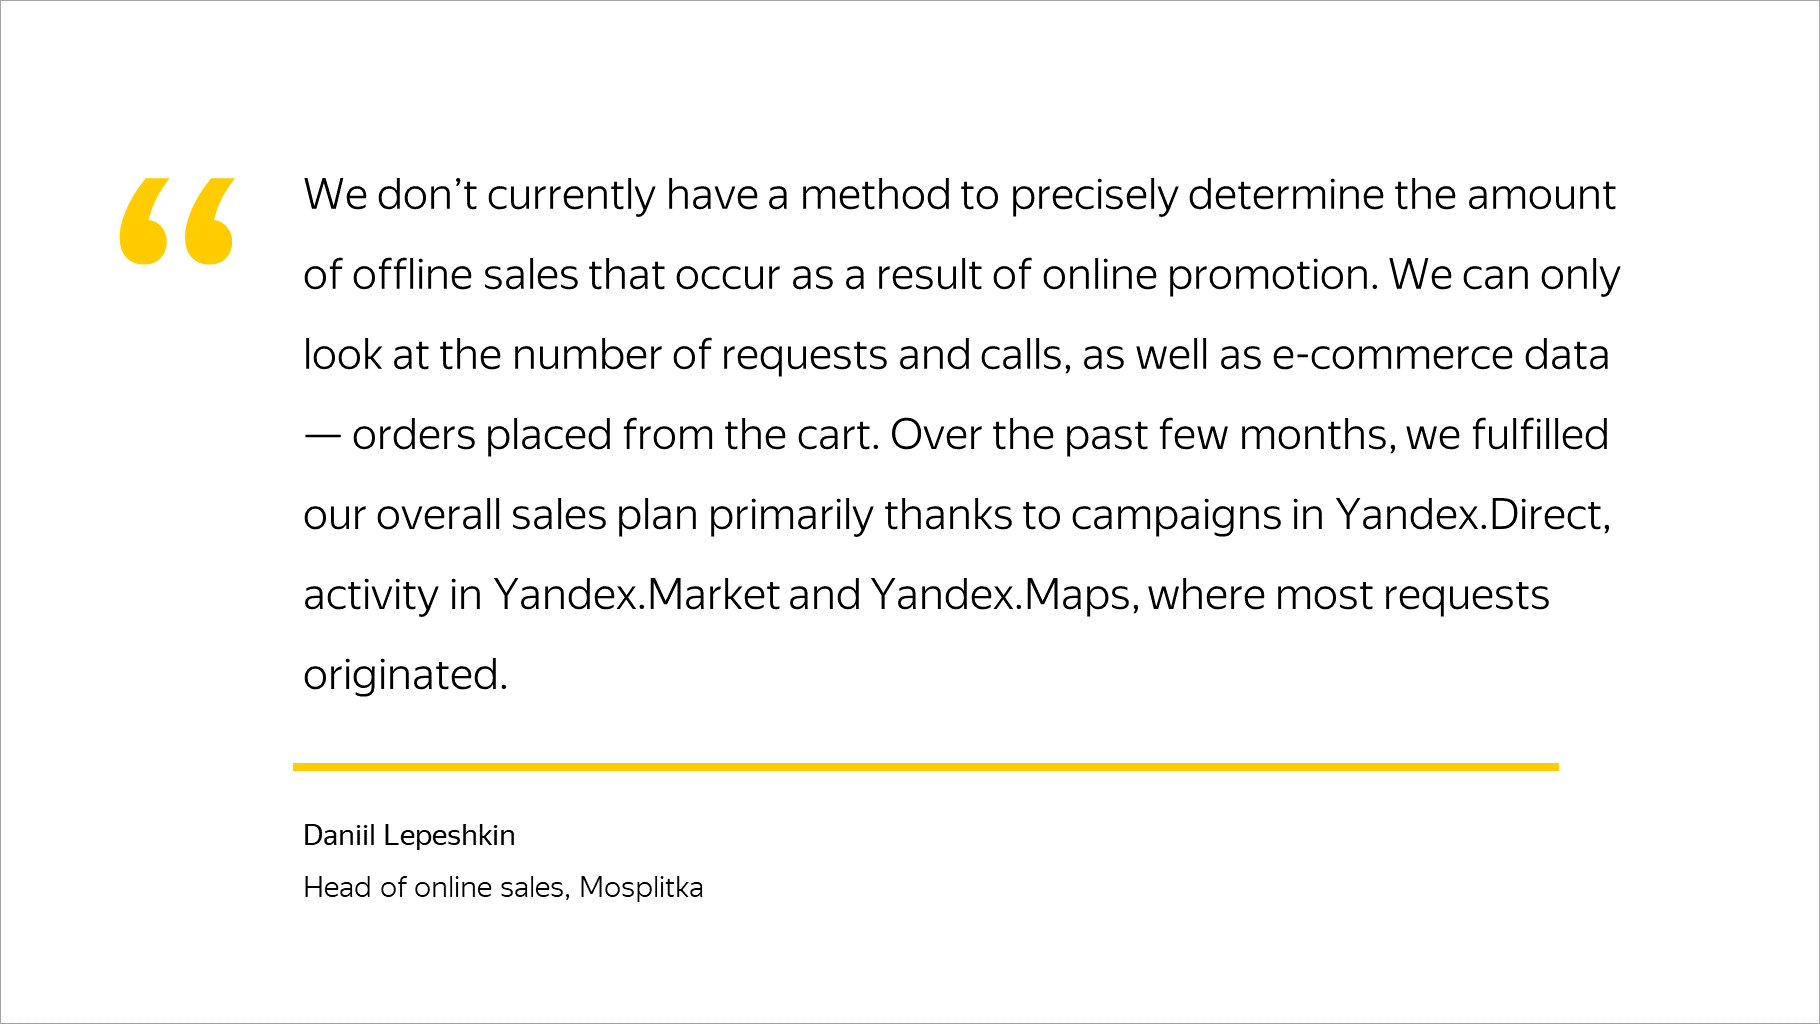 Over the past few months, we fulfilled our overall sales plan primarily thanks to campaigns in Yandex.Direct, activity in Yandex.Market and Yandex.Maps, where most requests originated.